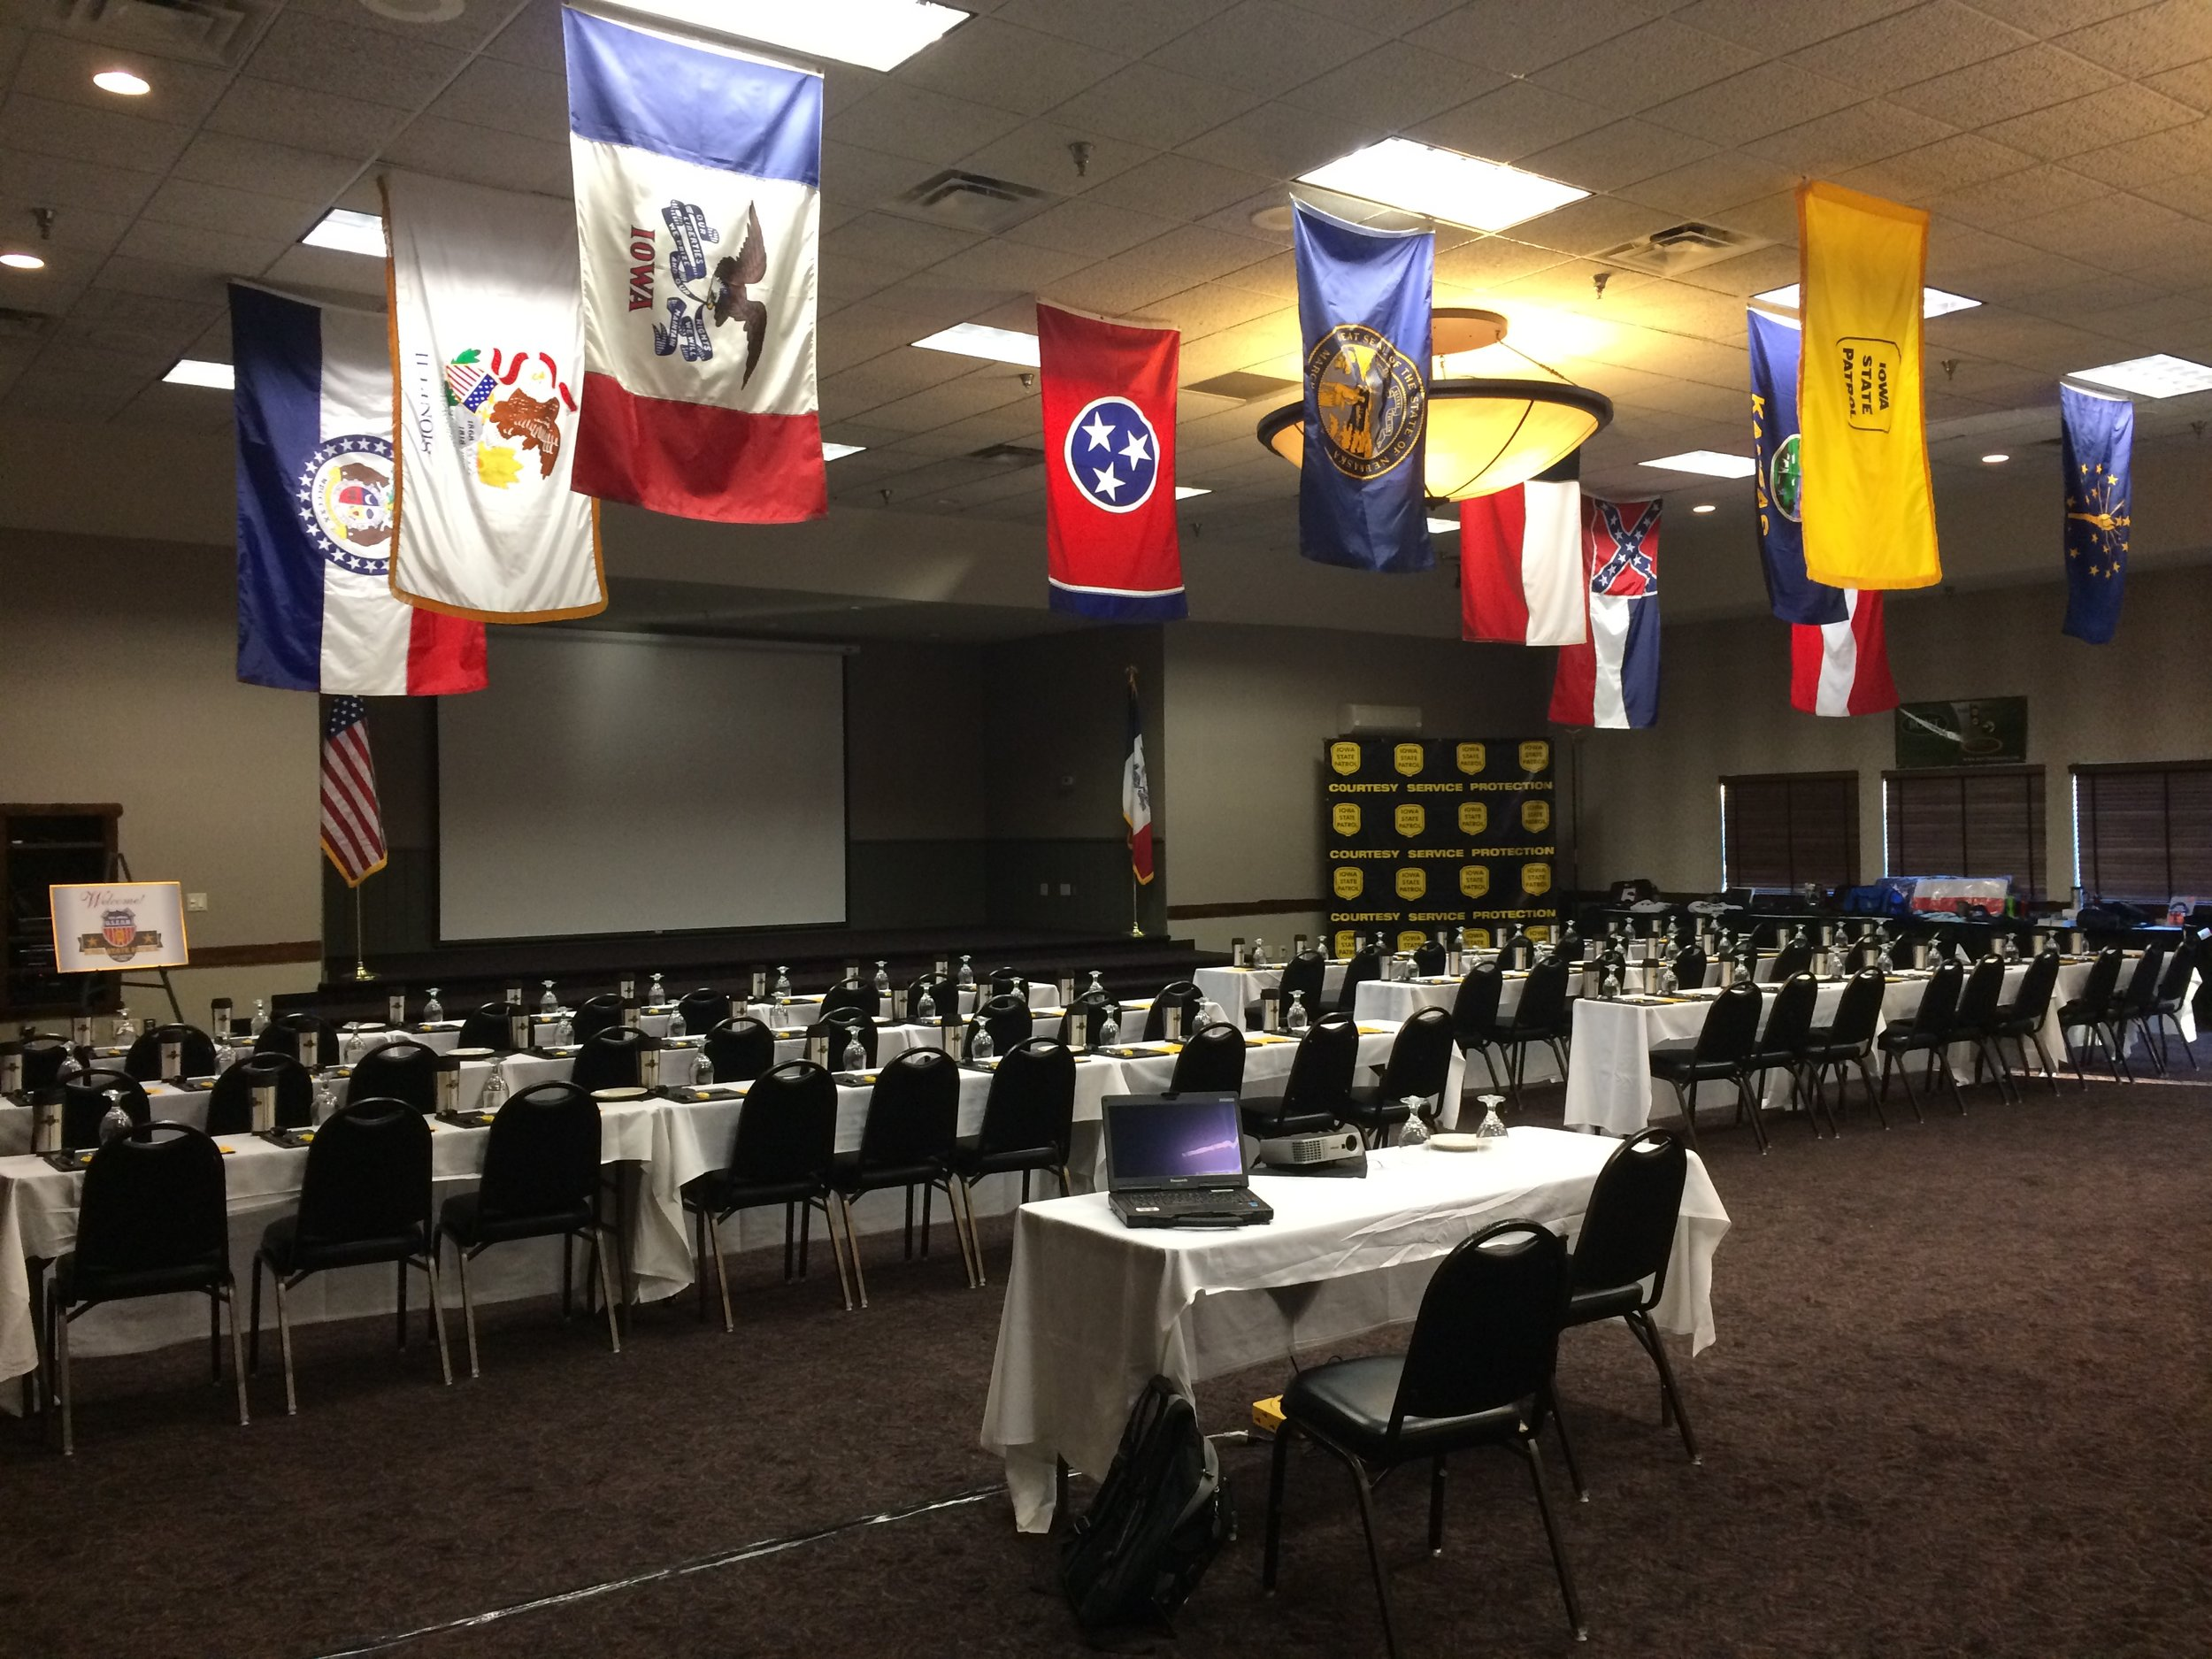 Iowa - Conference Room with Flags.JPG